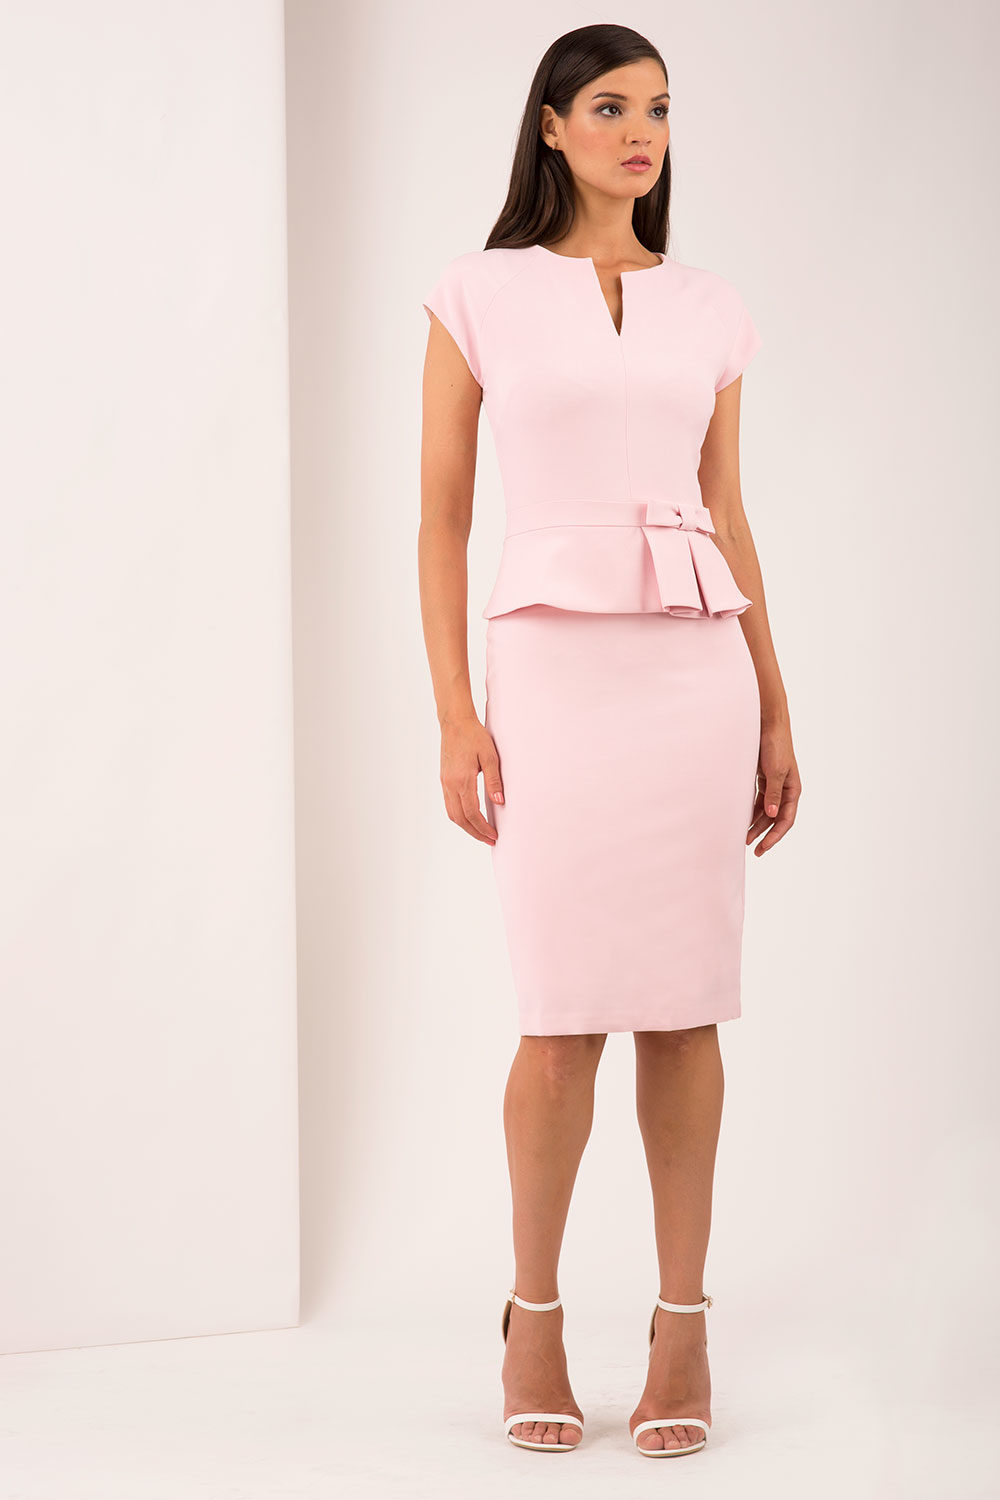 Hybrid Fashion 1268 Helena Peplum Pencil Dress